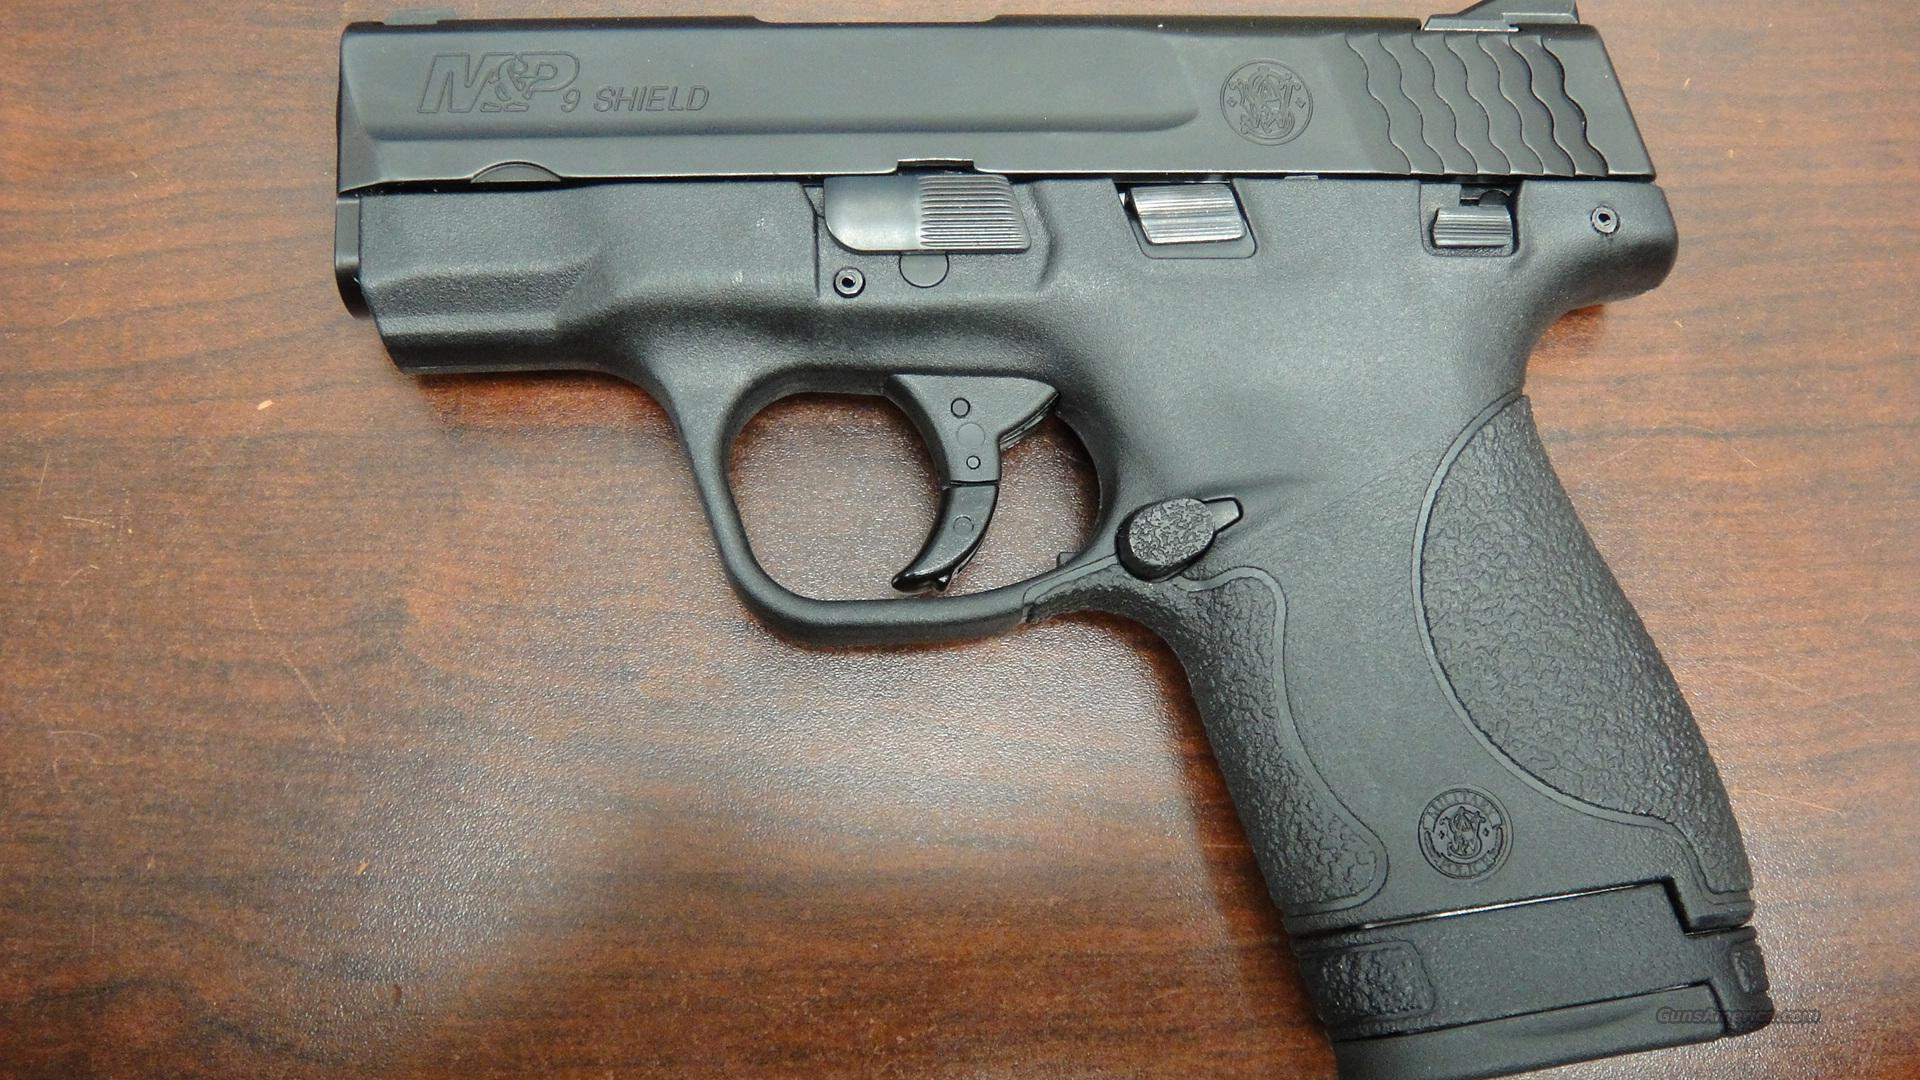 Smith and Wesson M&P 9 Shield  Guns > Pistols > Smith & Wesson Pistols - Autos > Shield